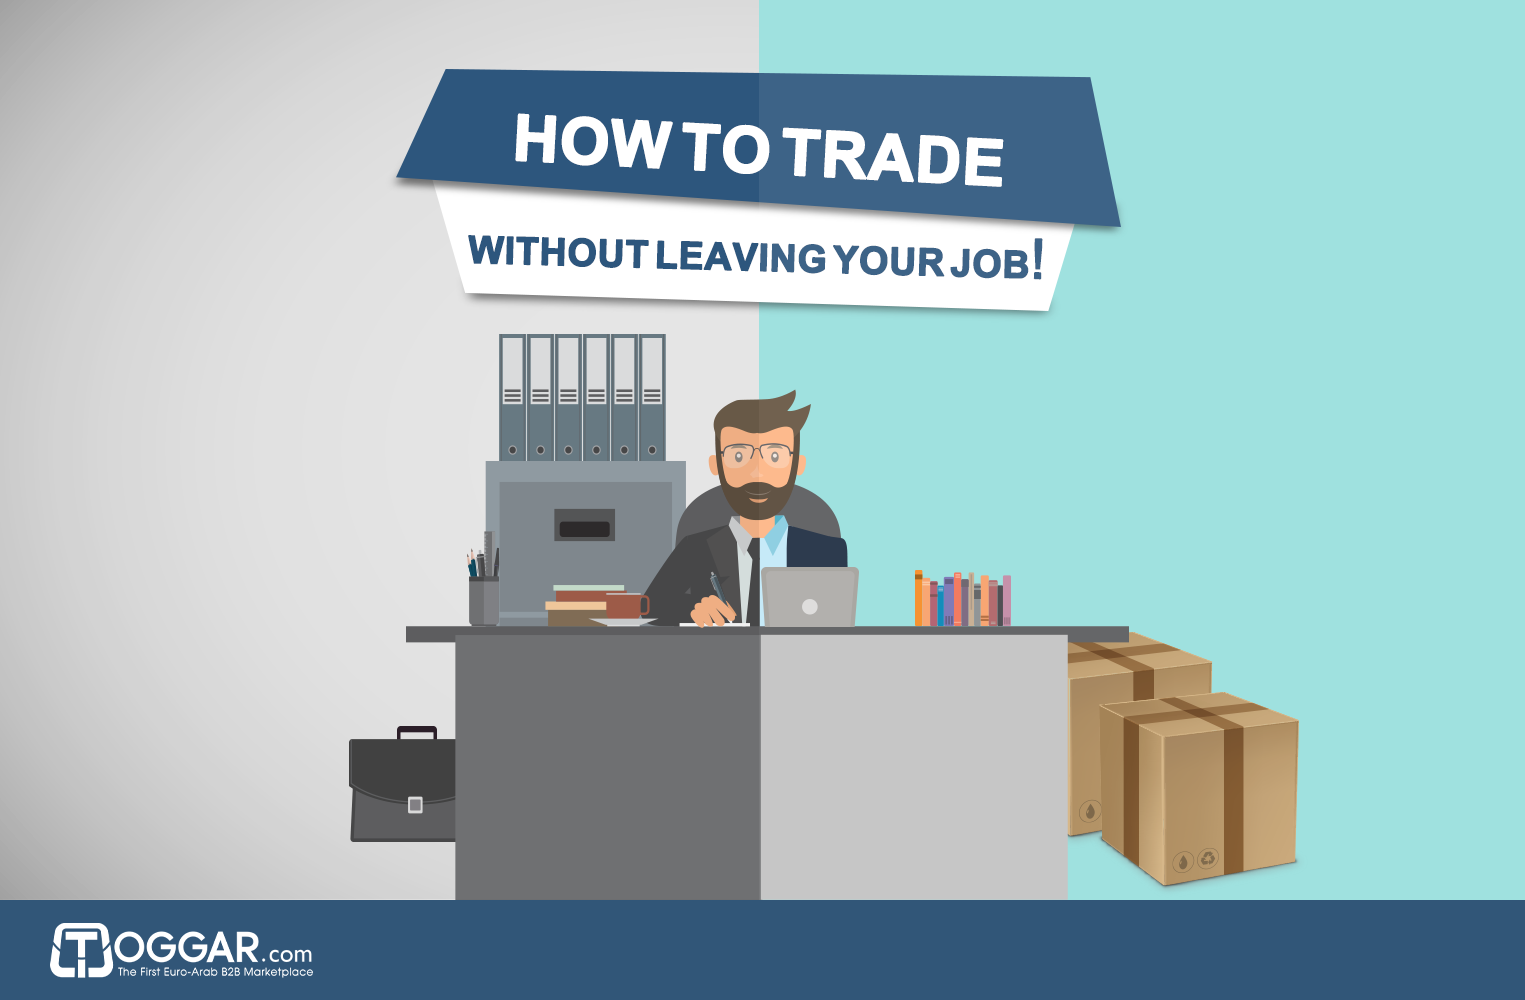 How to Trade without Leaving Your Job